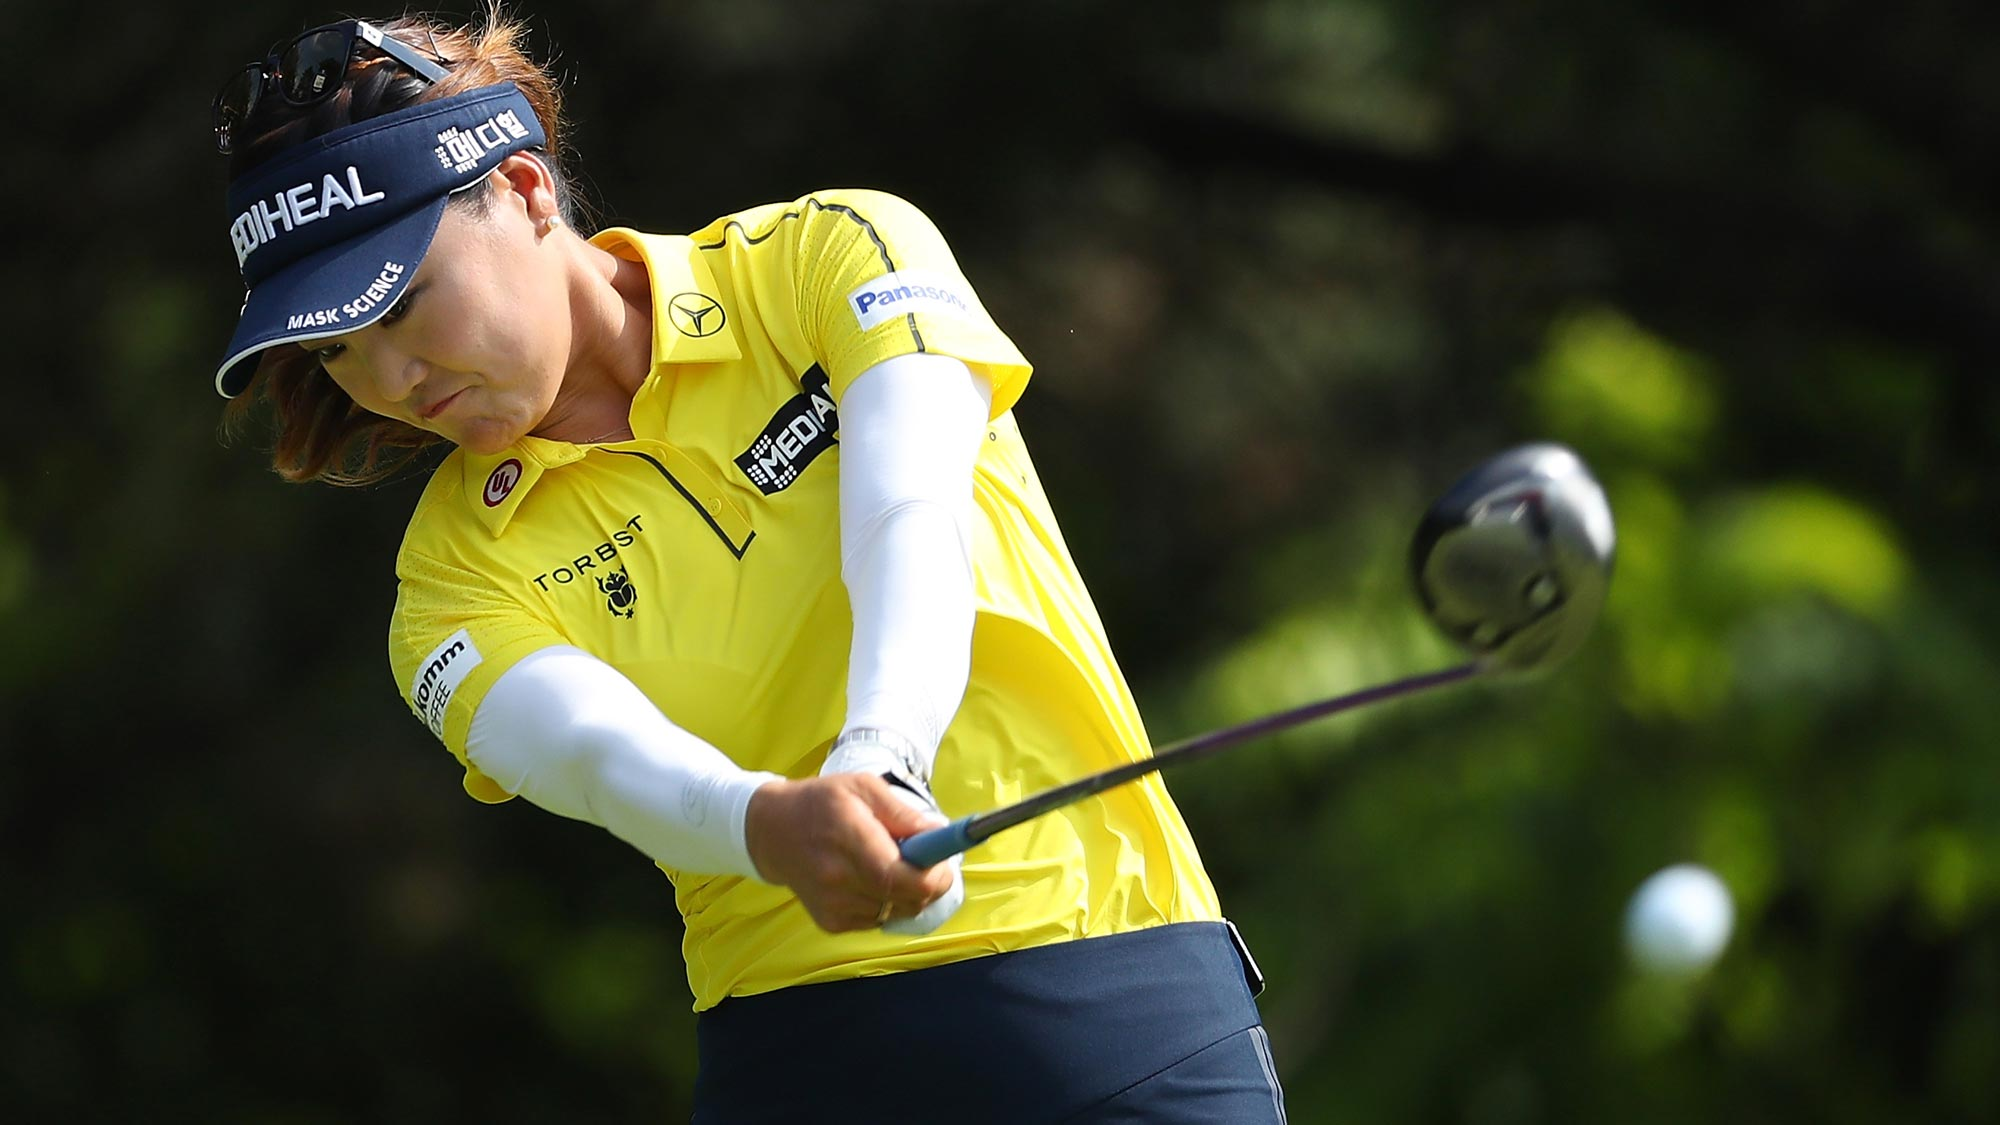 So Yeon Ryu of Korea hits her drive on the second hole during the final round of the 2018 KPMG Women's PGA Championship